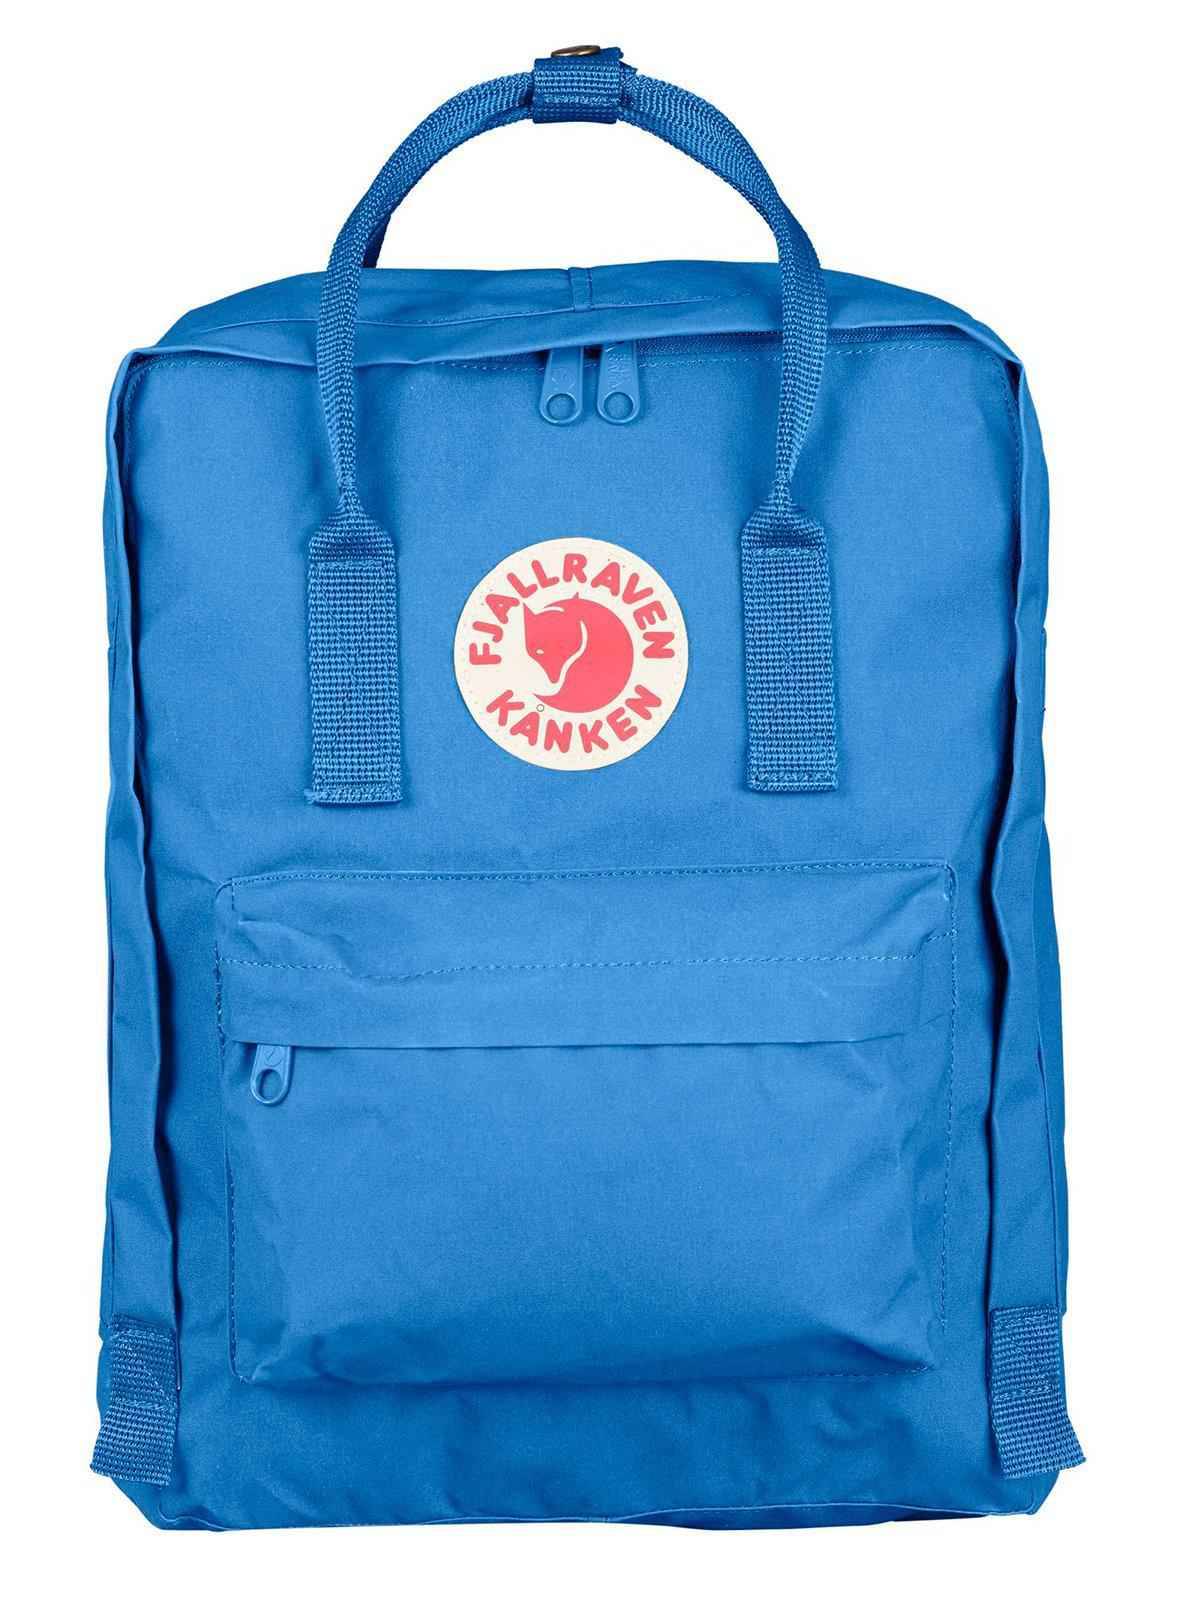 Fjallraven Kanken Classic Backpack UN Blue - MORE by Morello - Indonesia